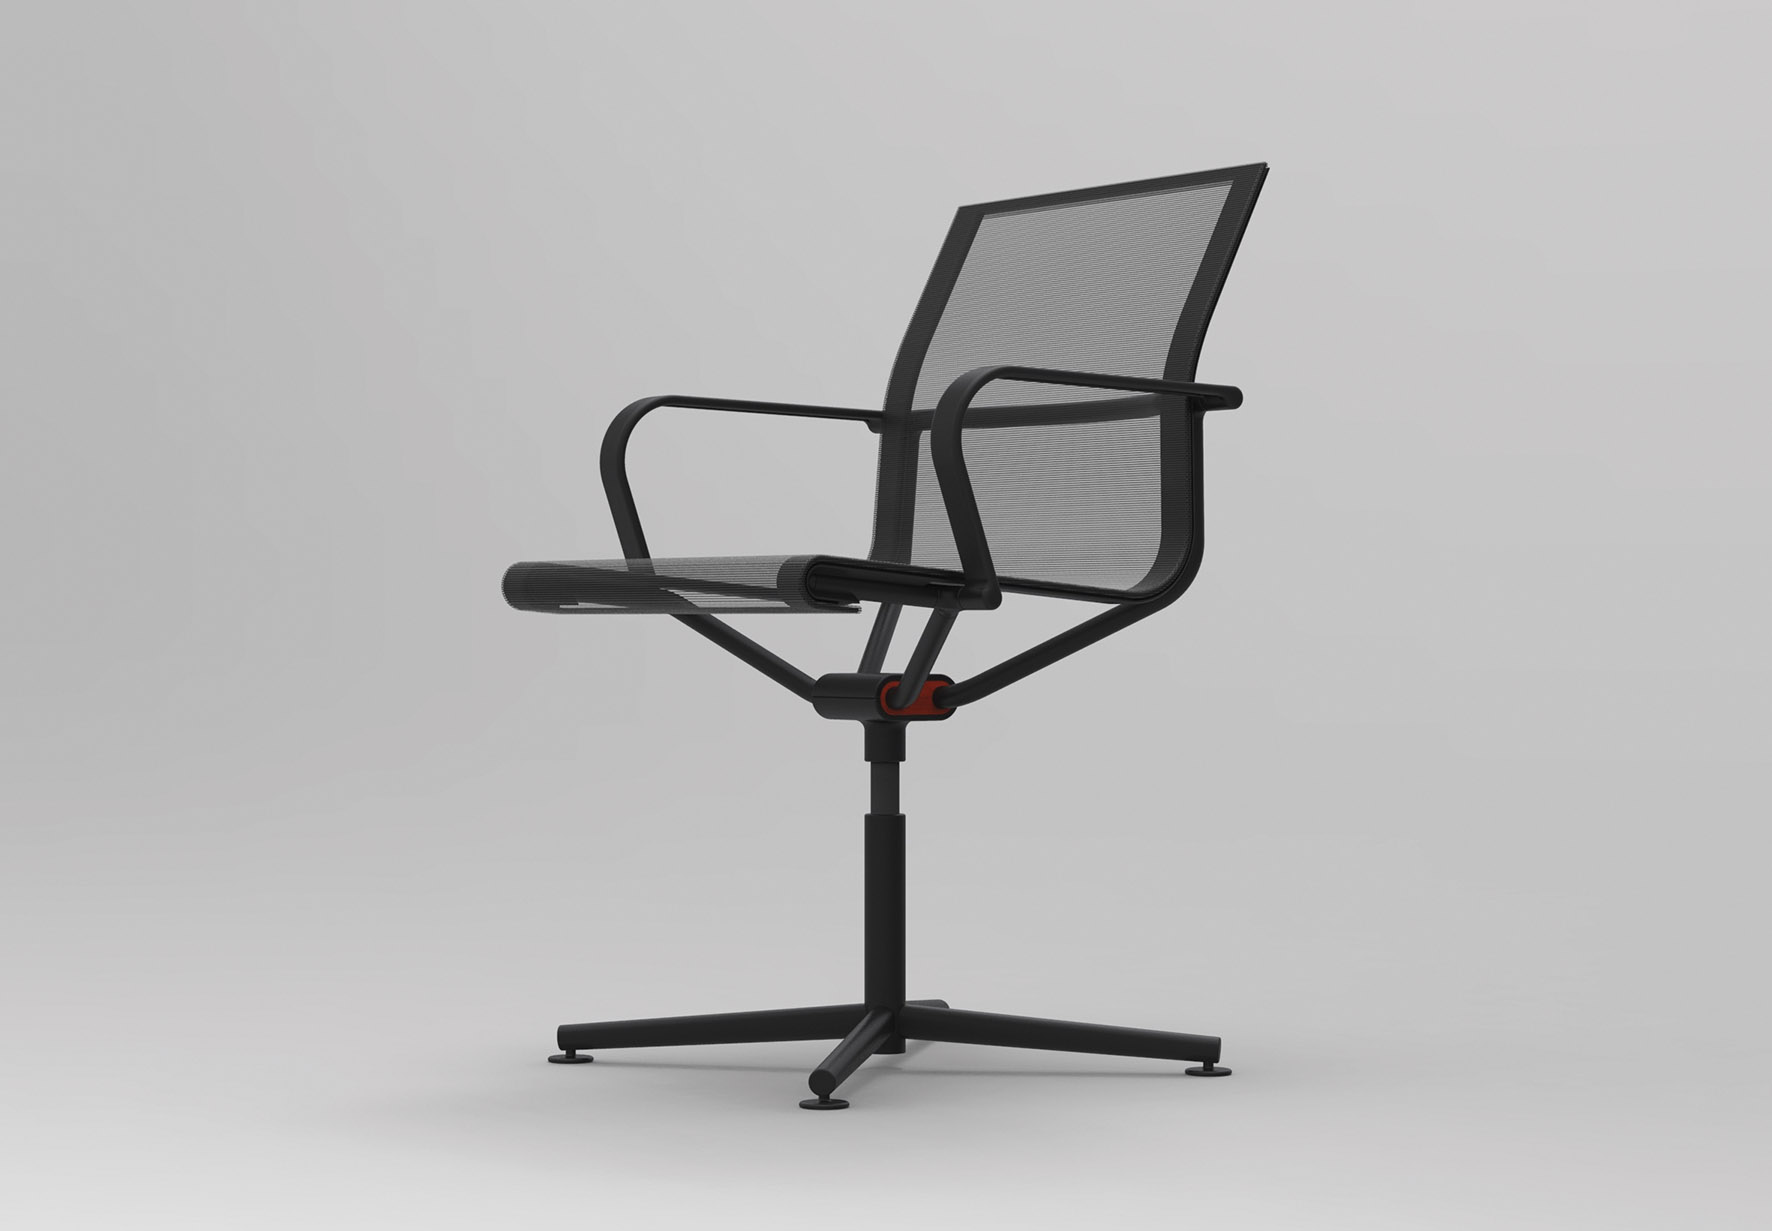 Stefan Diez's 'Dondolo D2' task chair - a stripped back racing model sans all the bulbous bits.